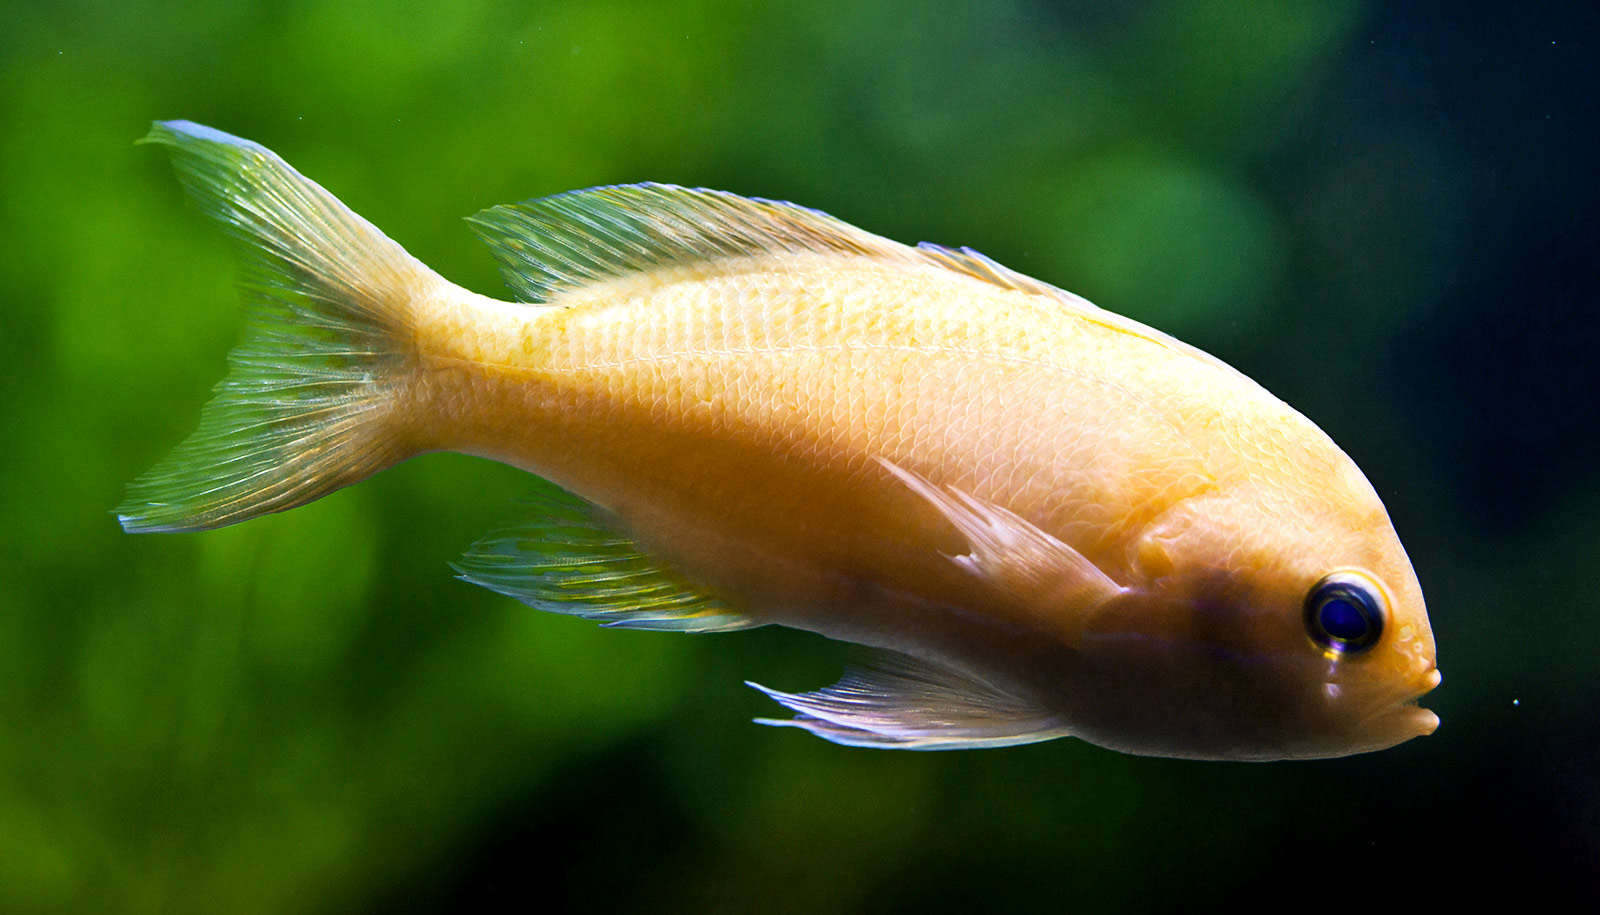 Why Fish Bend Their Fins Like Floppy Slices Of Pizza